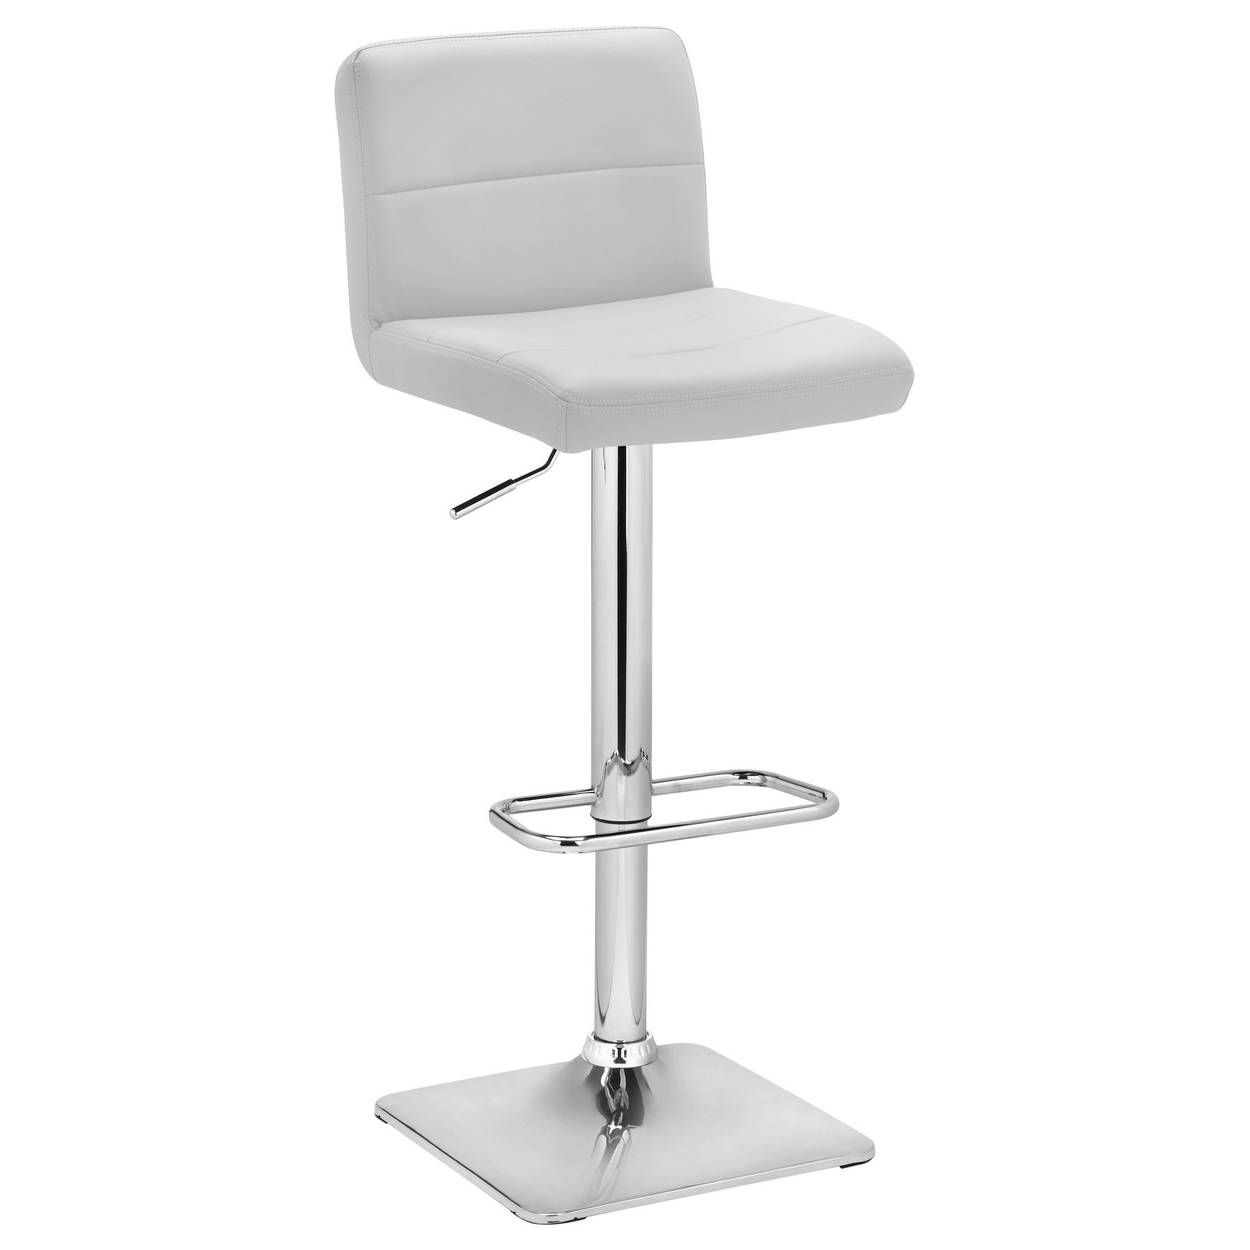 Matte Faux Leather And Chrome Adjustable Bar Stool Adjustable Bar Stools Bar Stools Stool